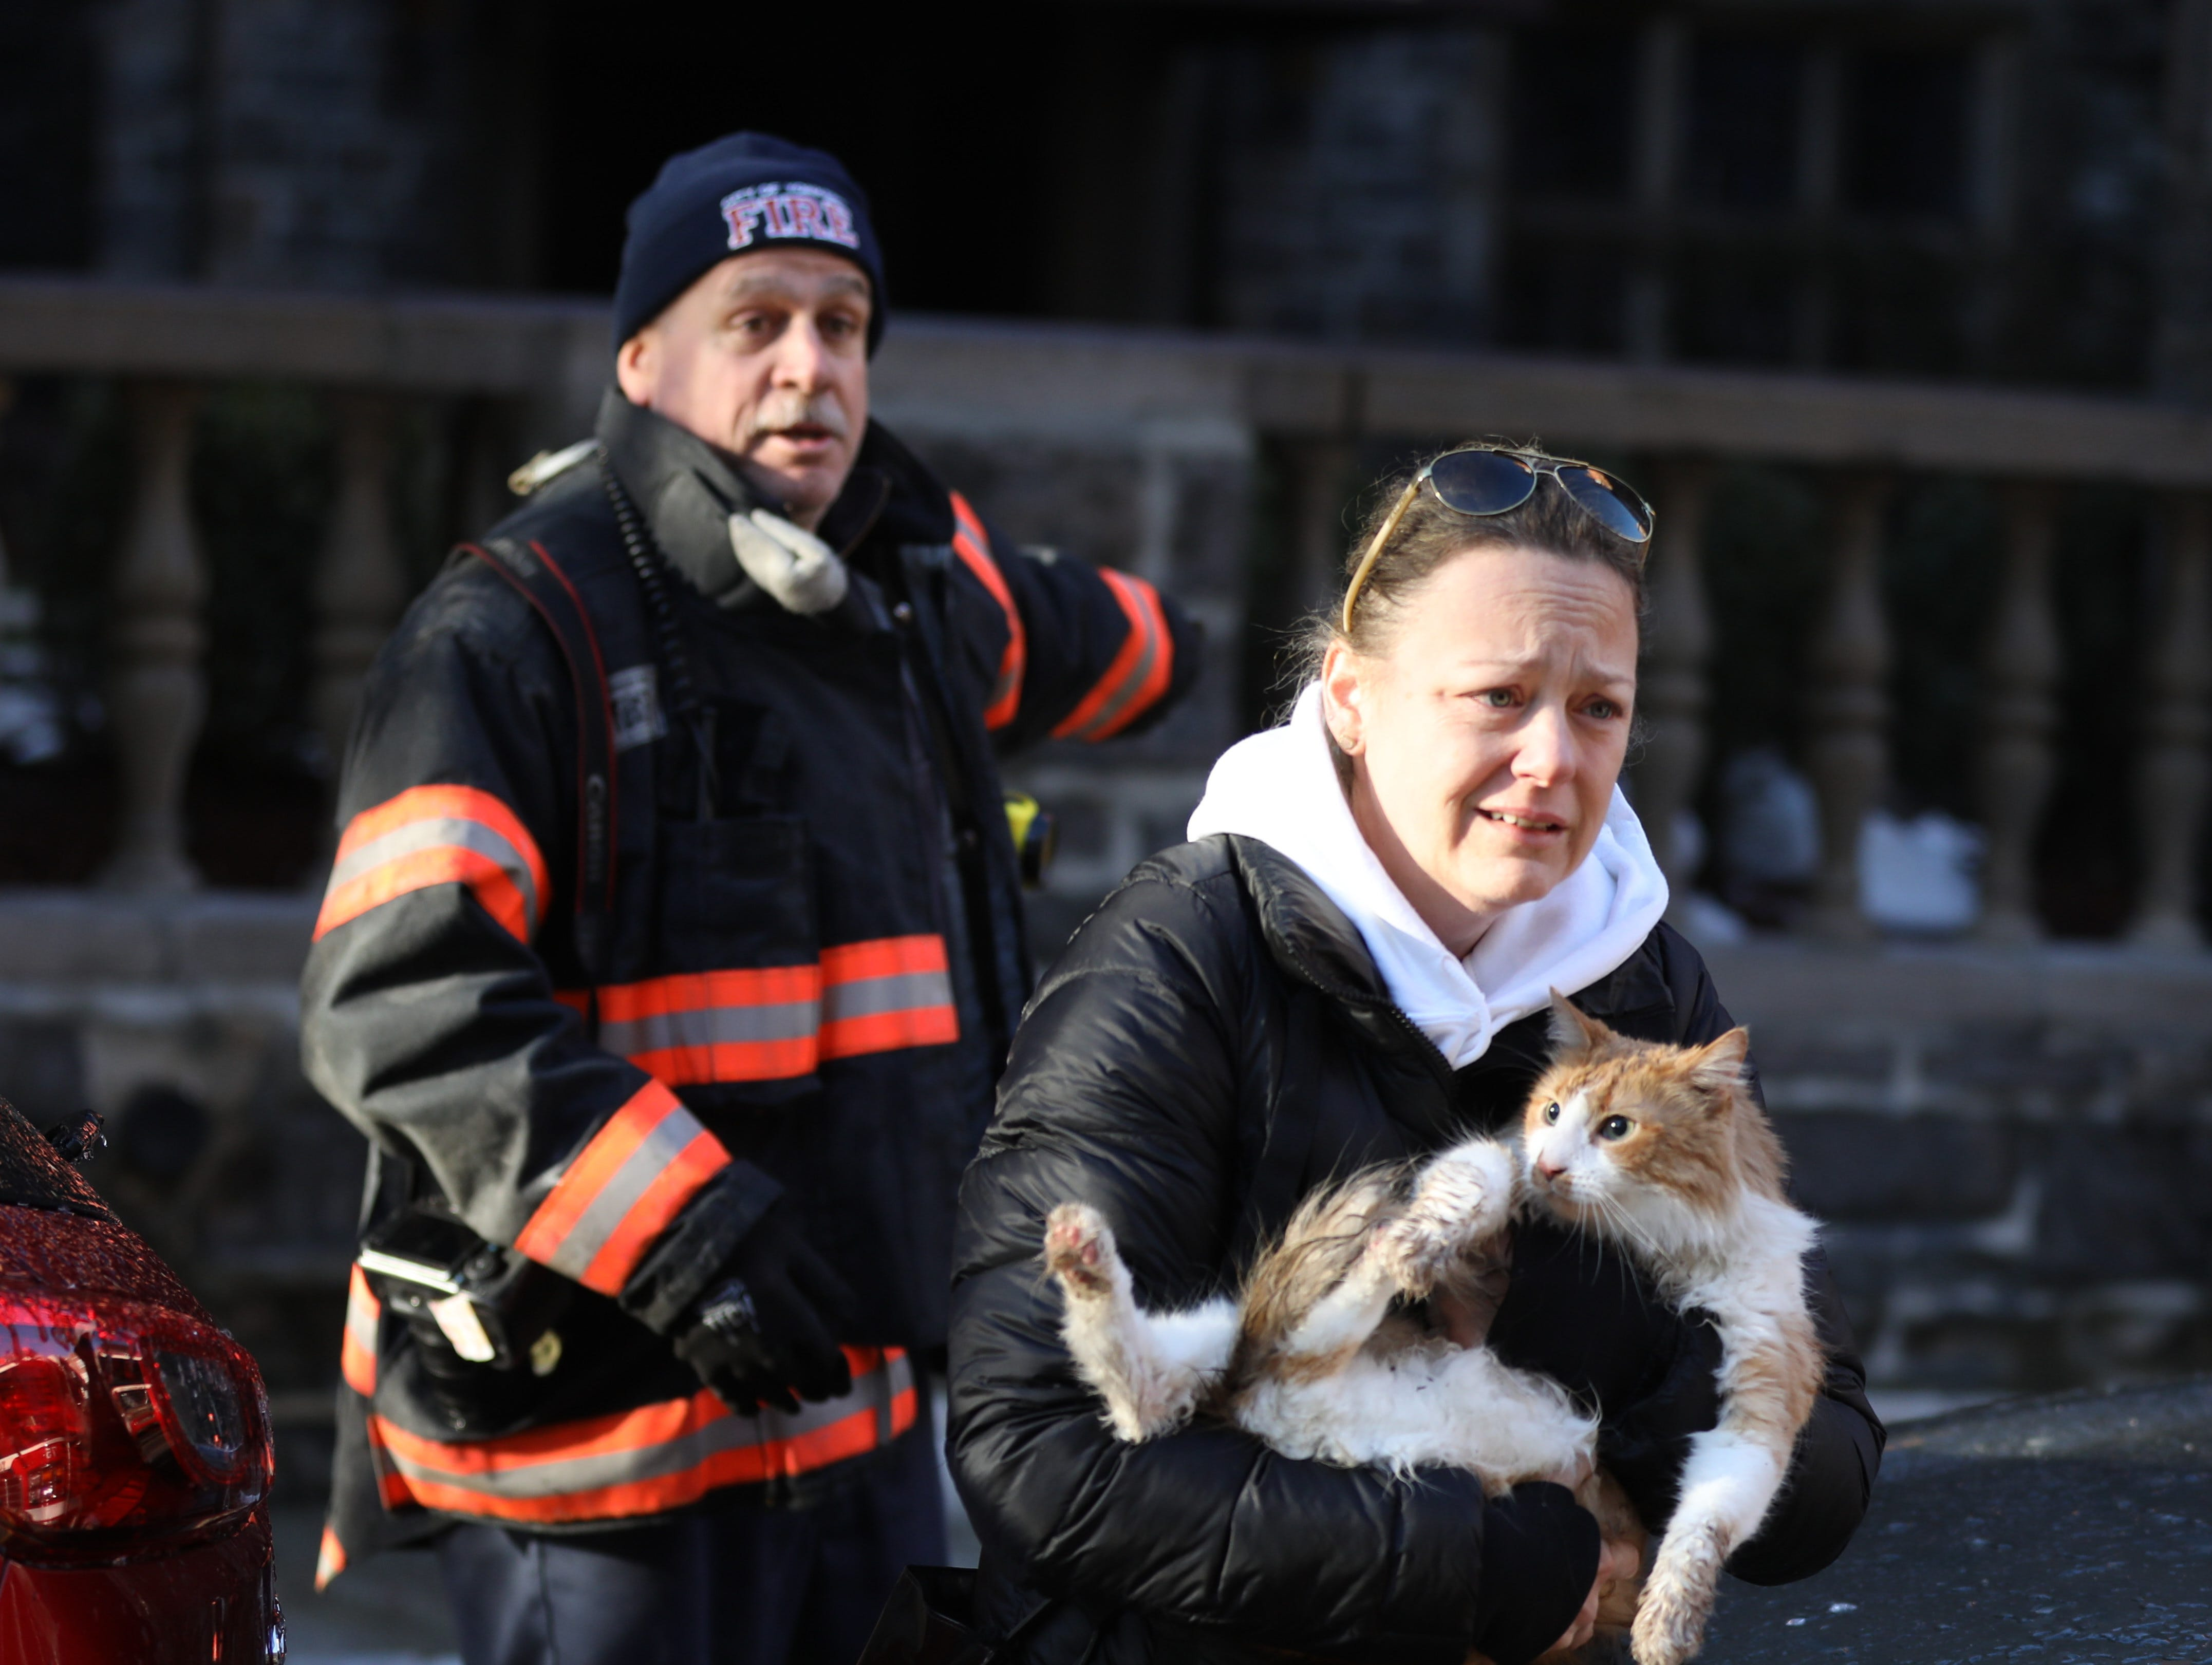 Paige Loonan retrieves her cat Dolche, with the help of Yonkers fire investigator Chris Leal, at 15 Parkview Avenue in Yonkers, March 13, 2019, the day after the general alarm fire fought by Yonkers firefighters and mutual aid companies.